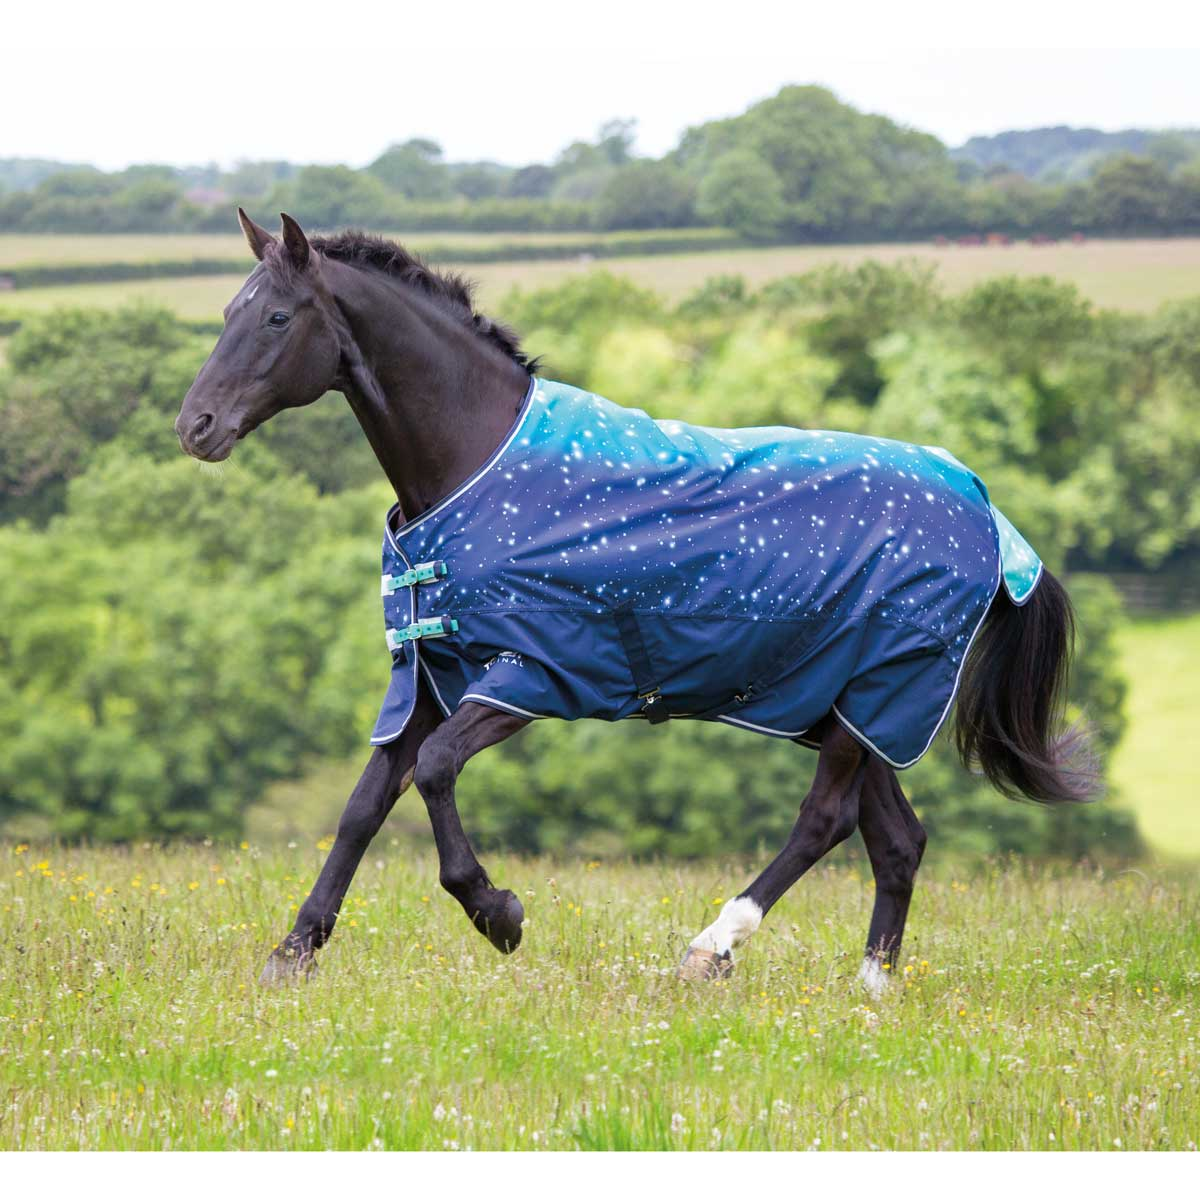 NEW! Shires 0G Turnouts in Nebular Print!